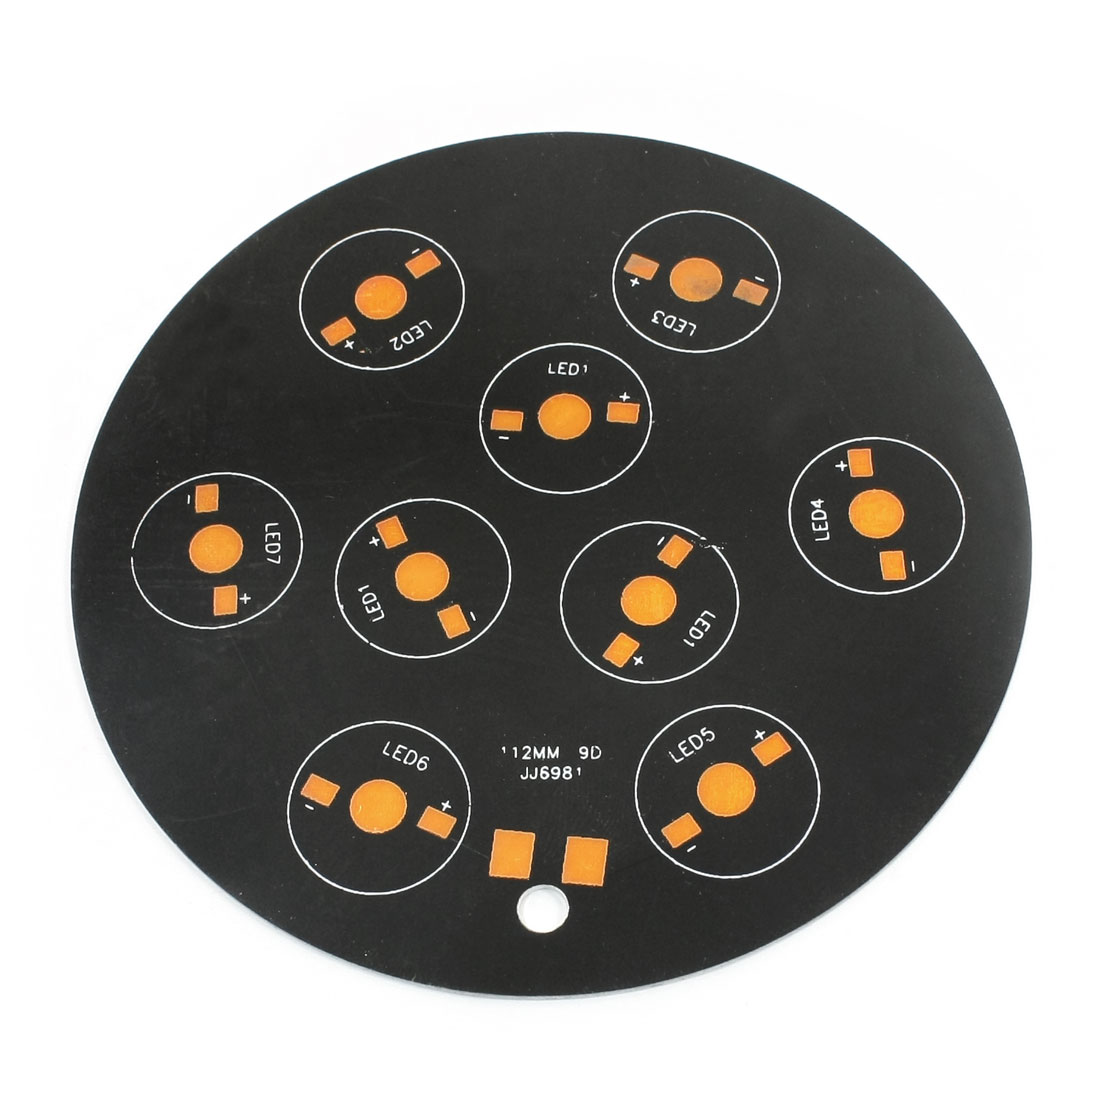 112mm Dia 9 x 1W/3W/5W LED Round Aluminum PCB Circuit Board Base Plate